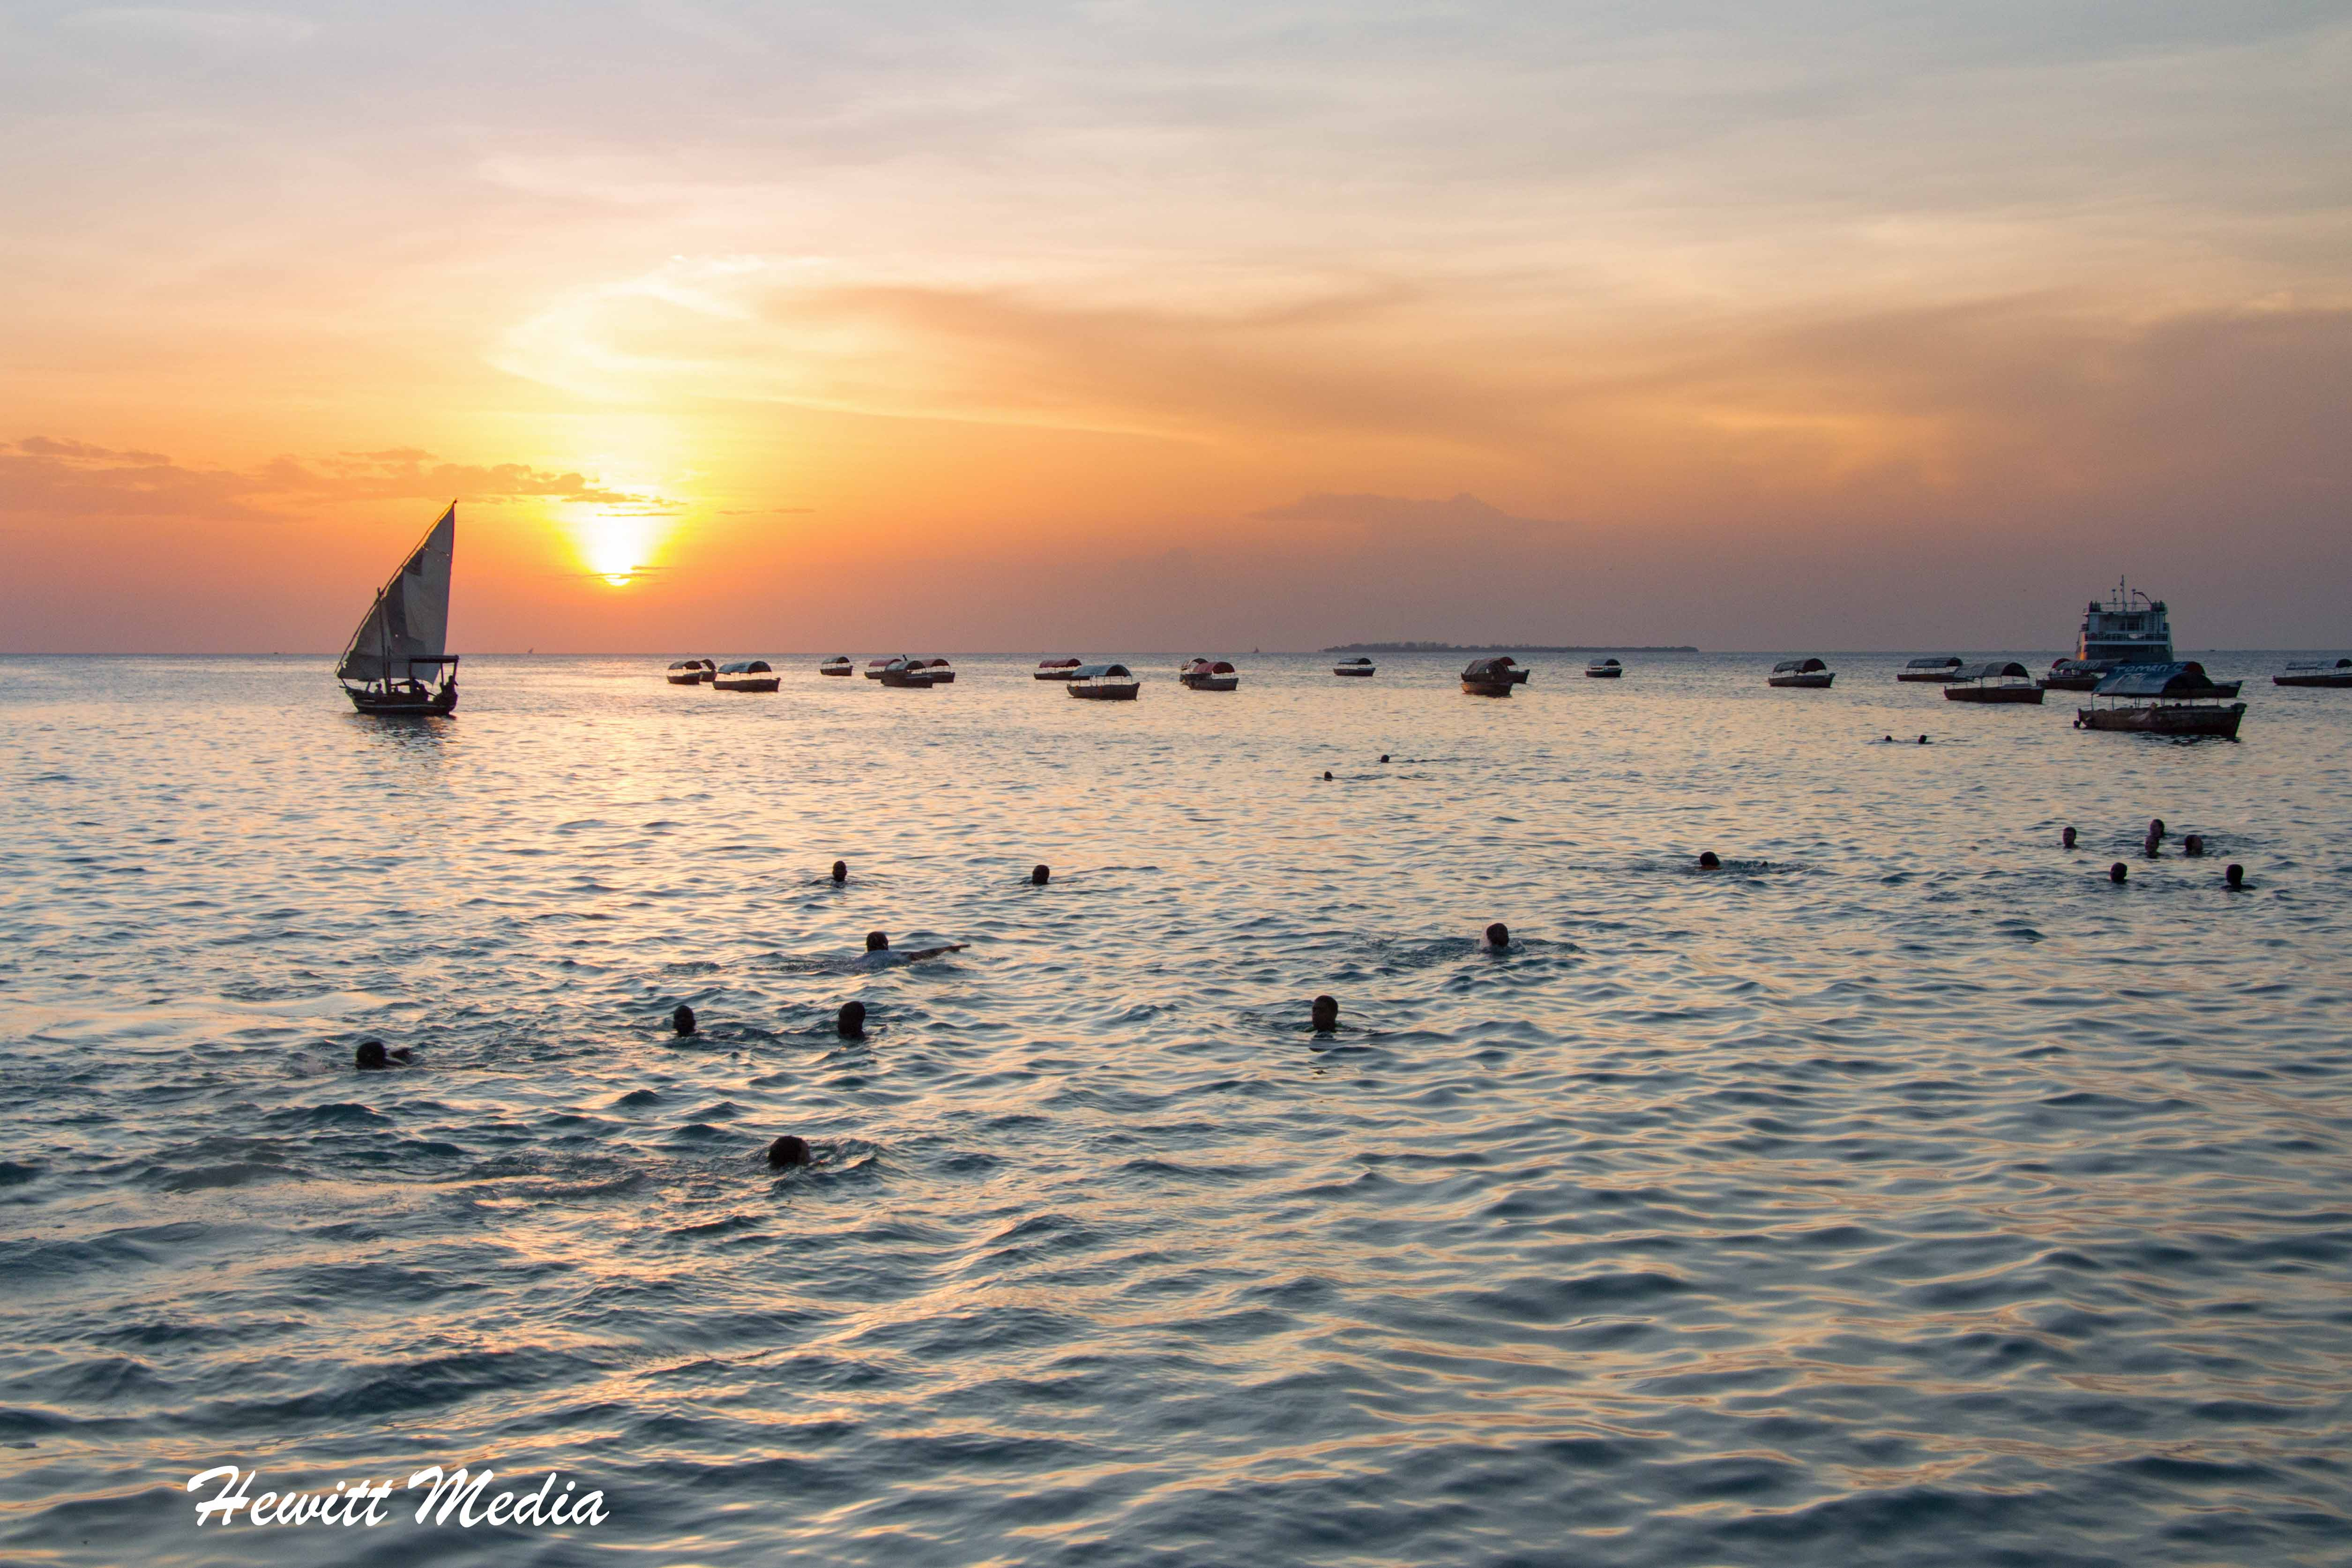 Sunset over the ocean in Stone Town